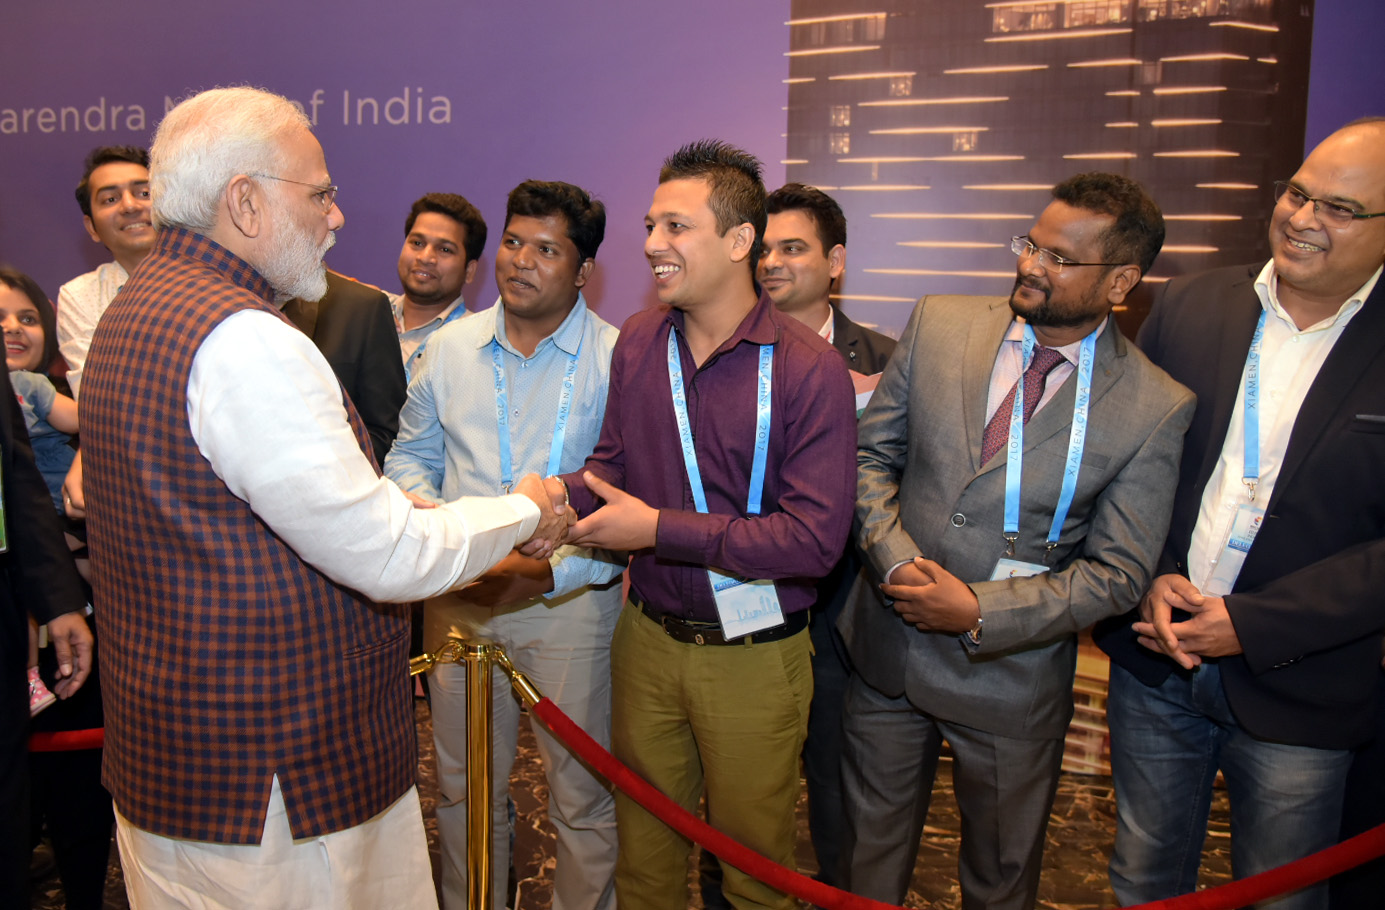 PM Modi greeting Indians who came to meet him in XIamen.